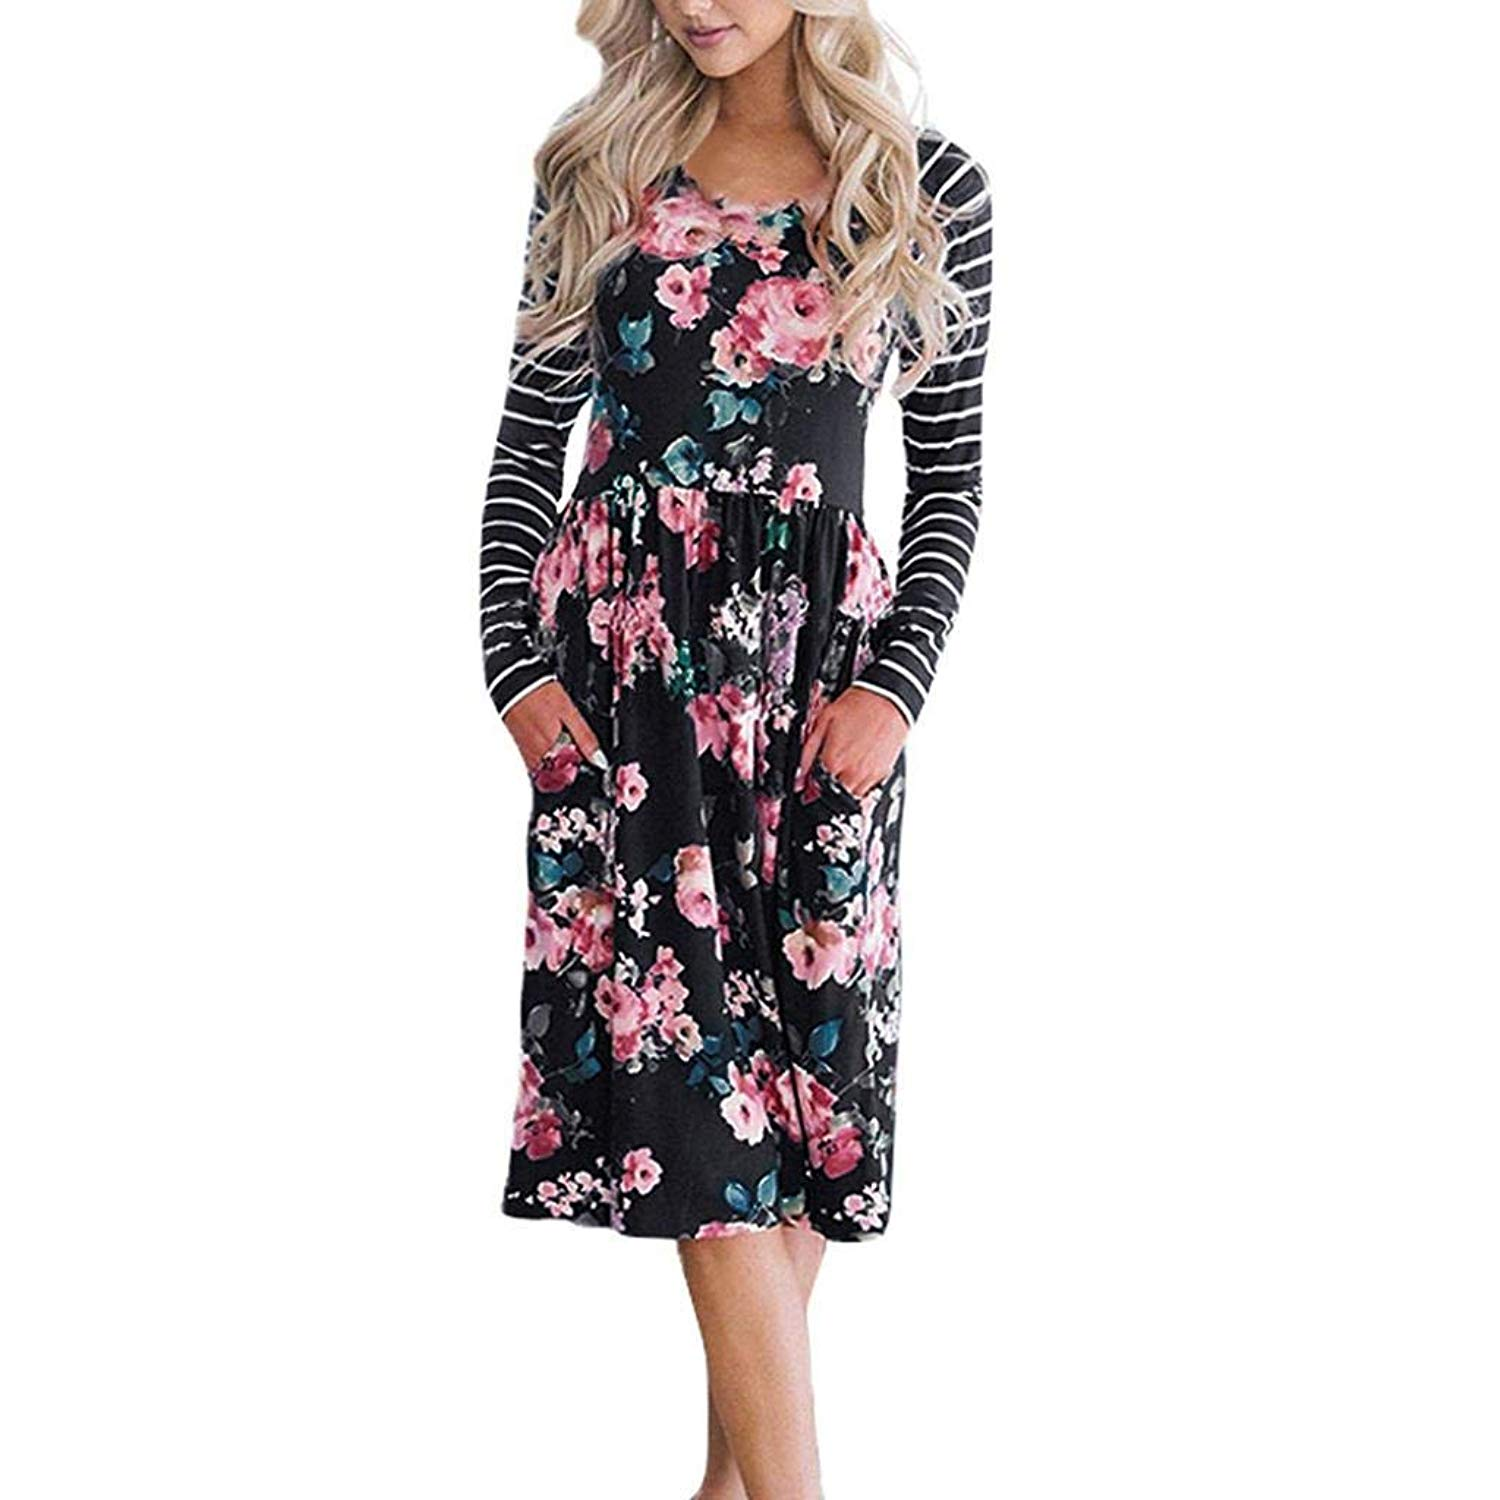 2018 Hot! Casual Autumn Dress,Women Floral Printed Striped Long Sleeve Pleated Maxi Dresses with Pockets